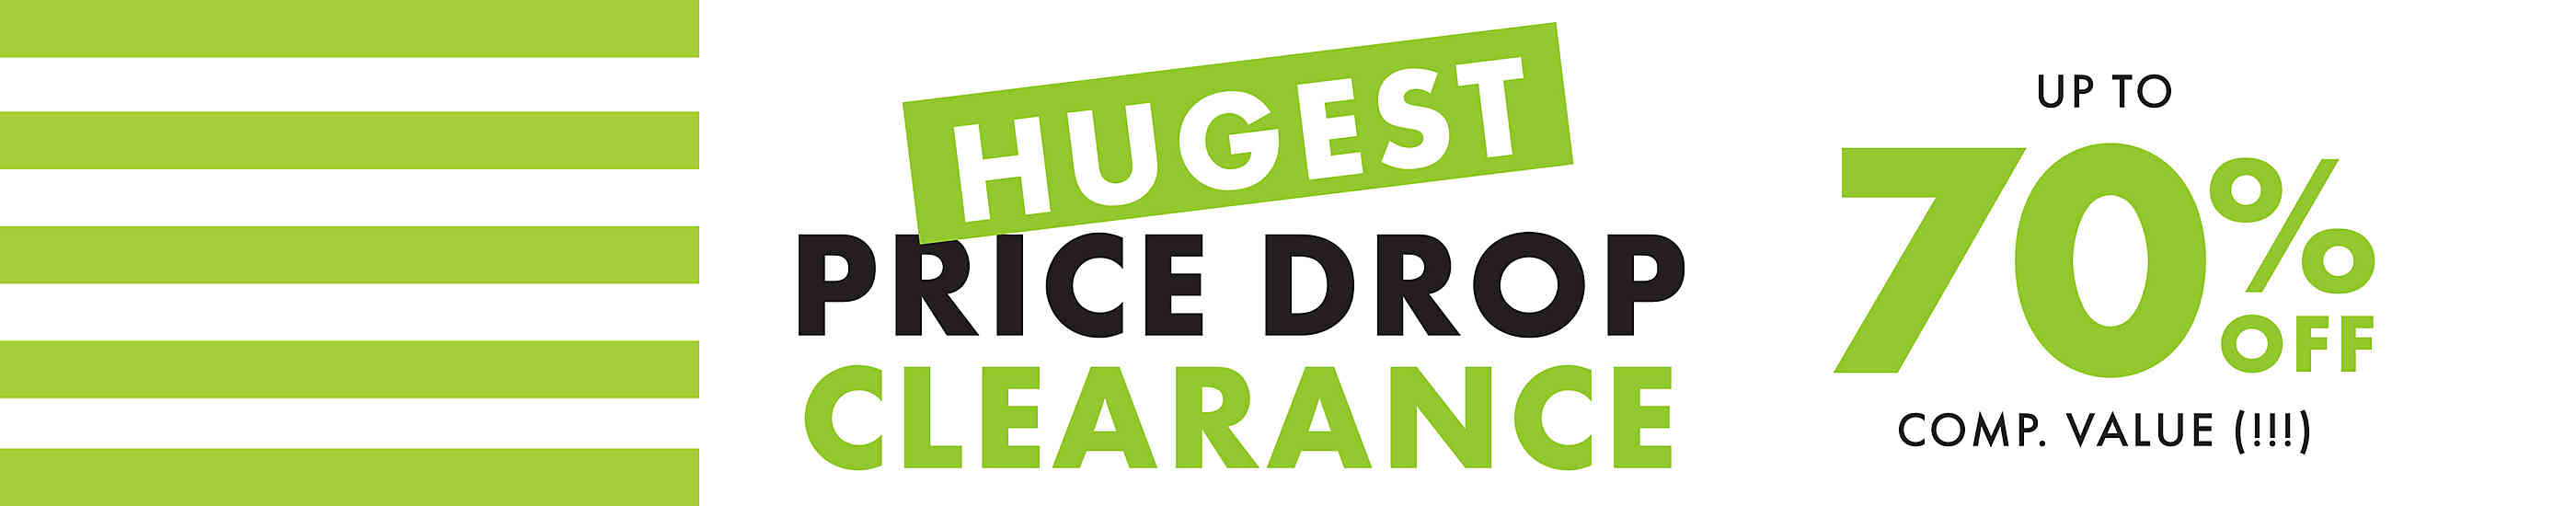 Hugest price drop clearance up to 70% off comp. value (!!!)